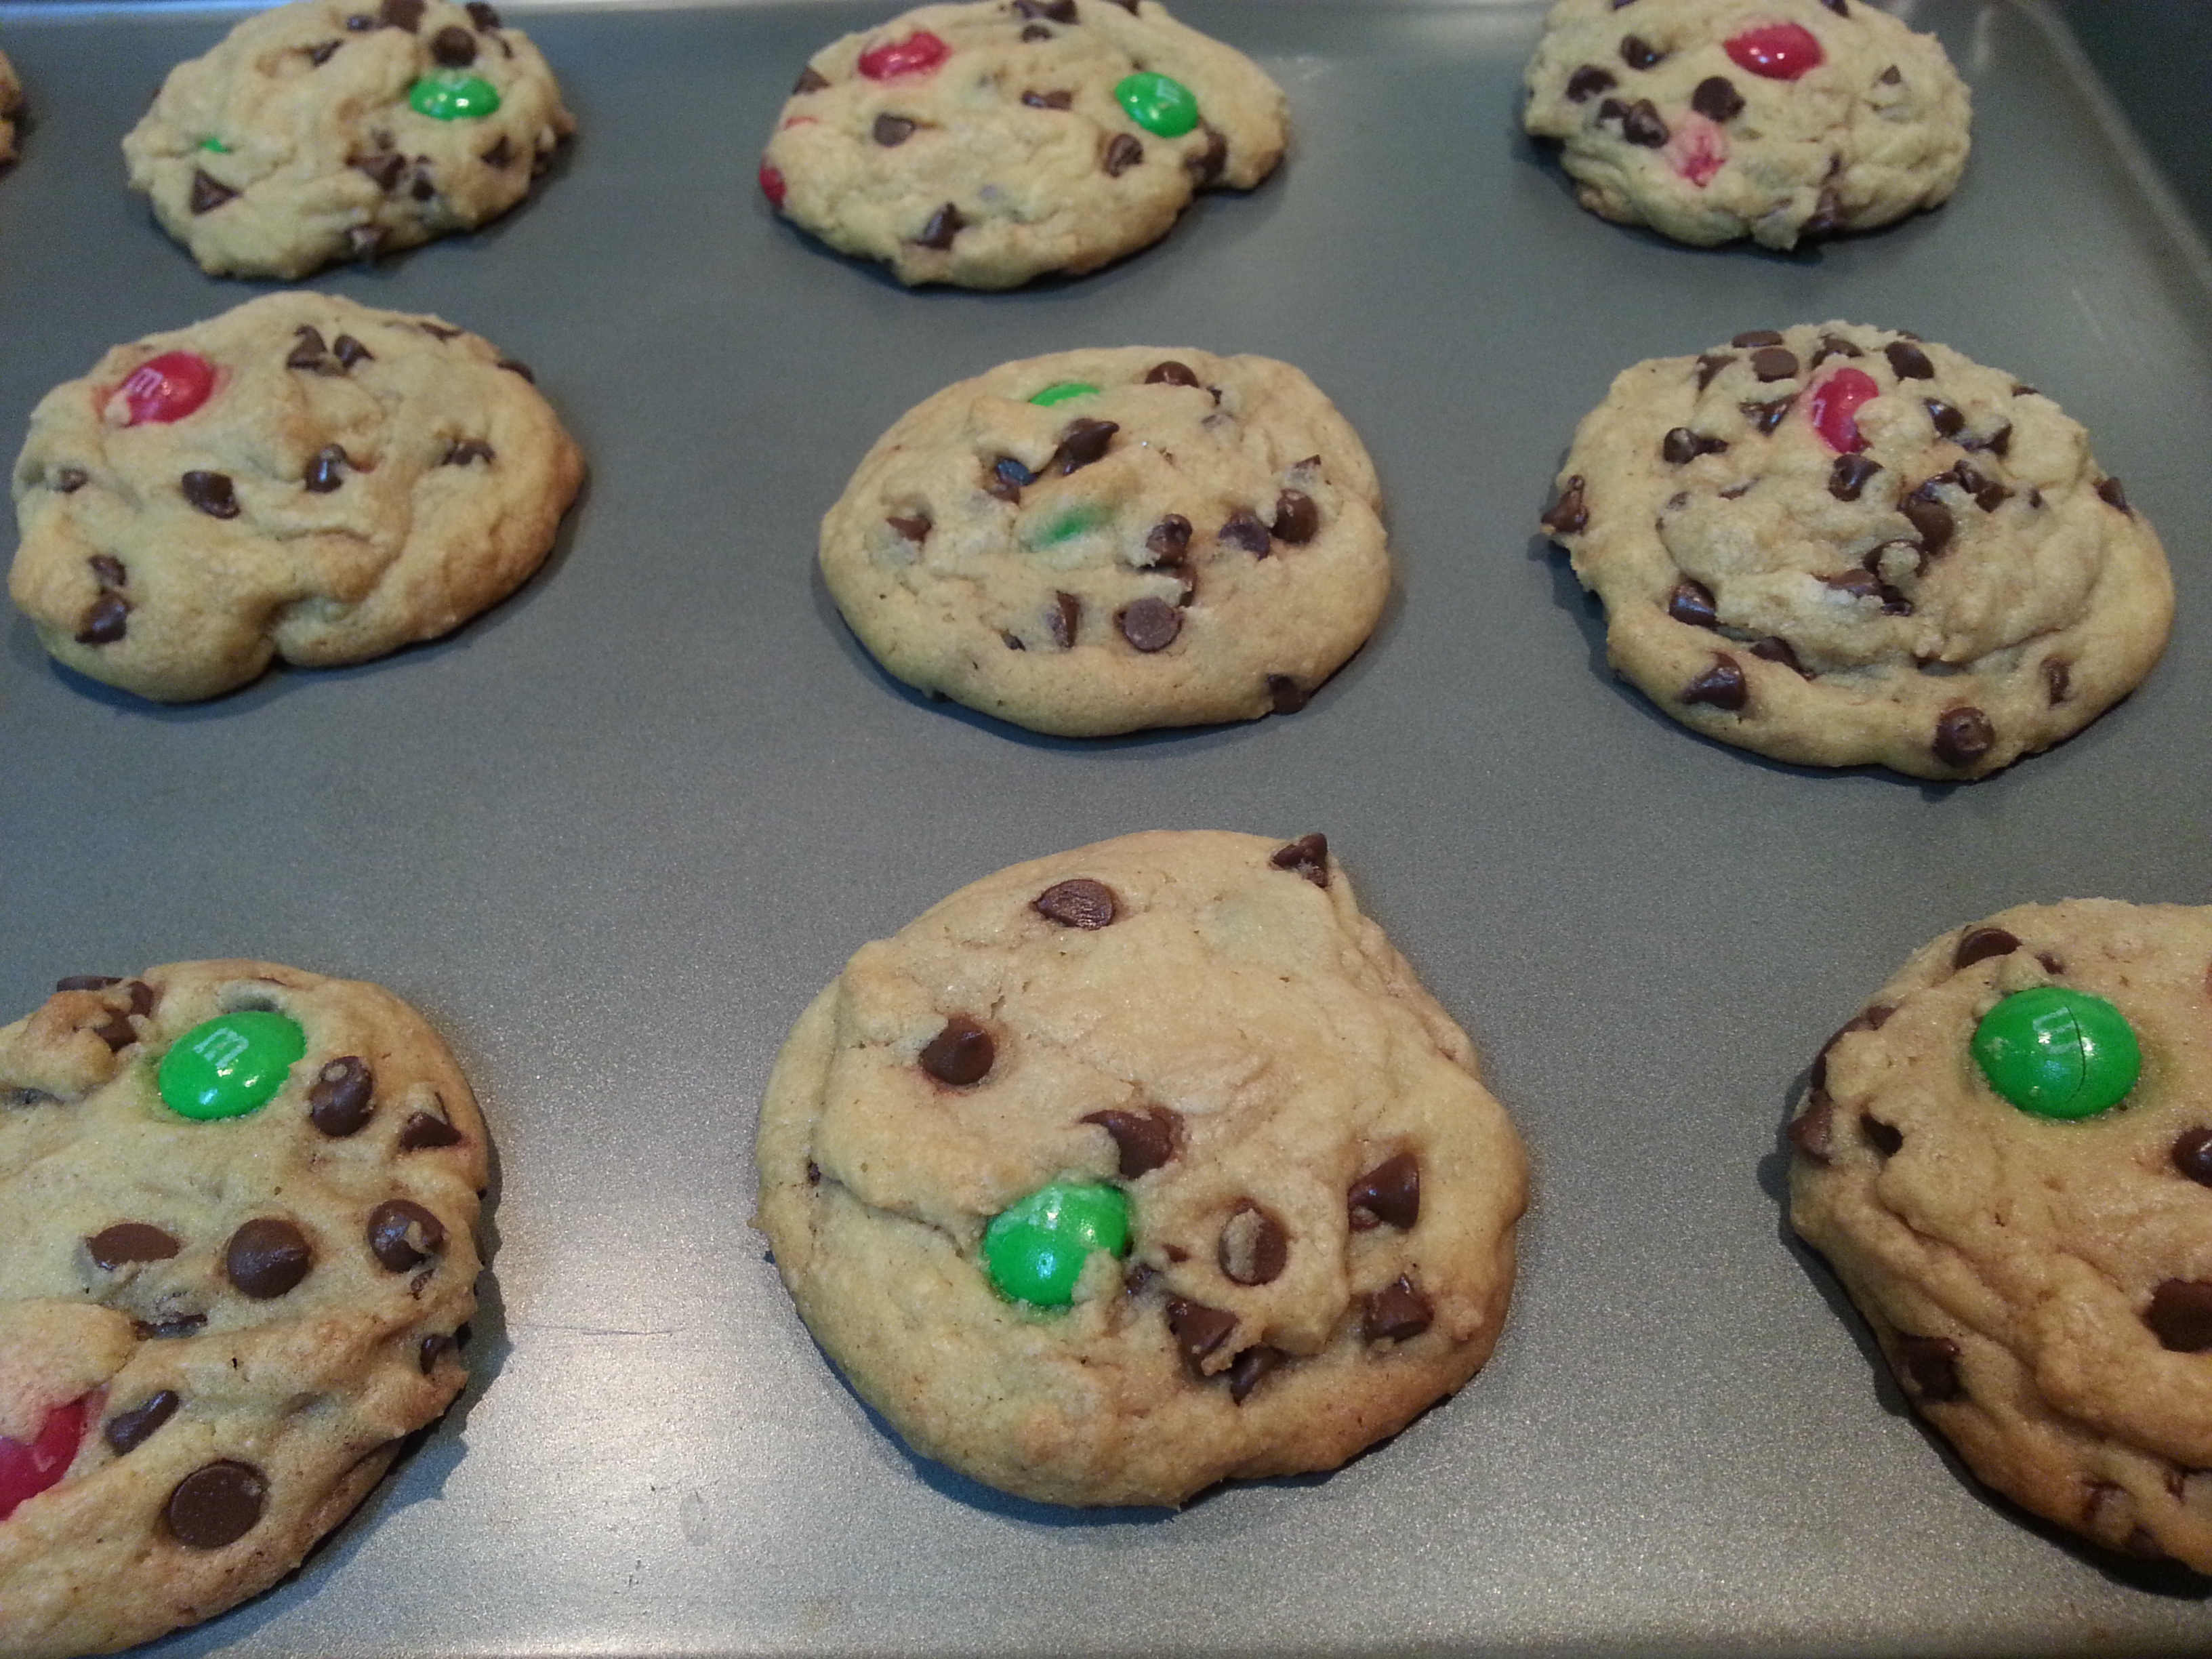 ... Desserts Cookies and Bars Award Winning Soft Chocolate Chip Cookies